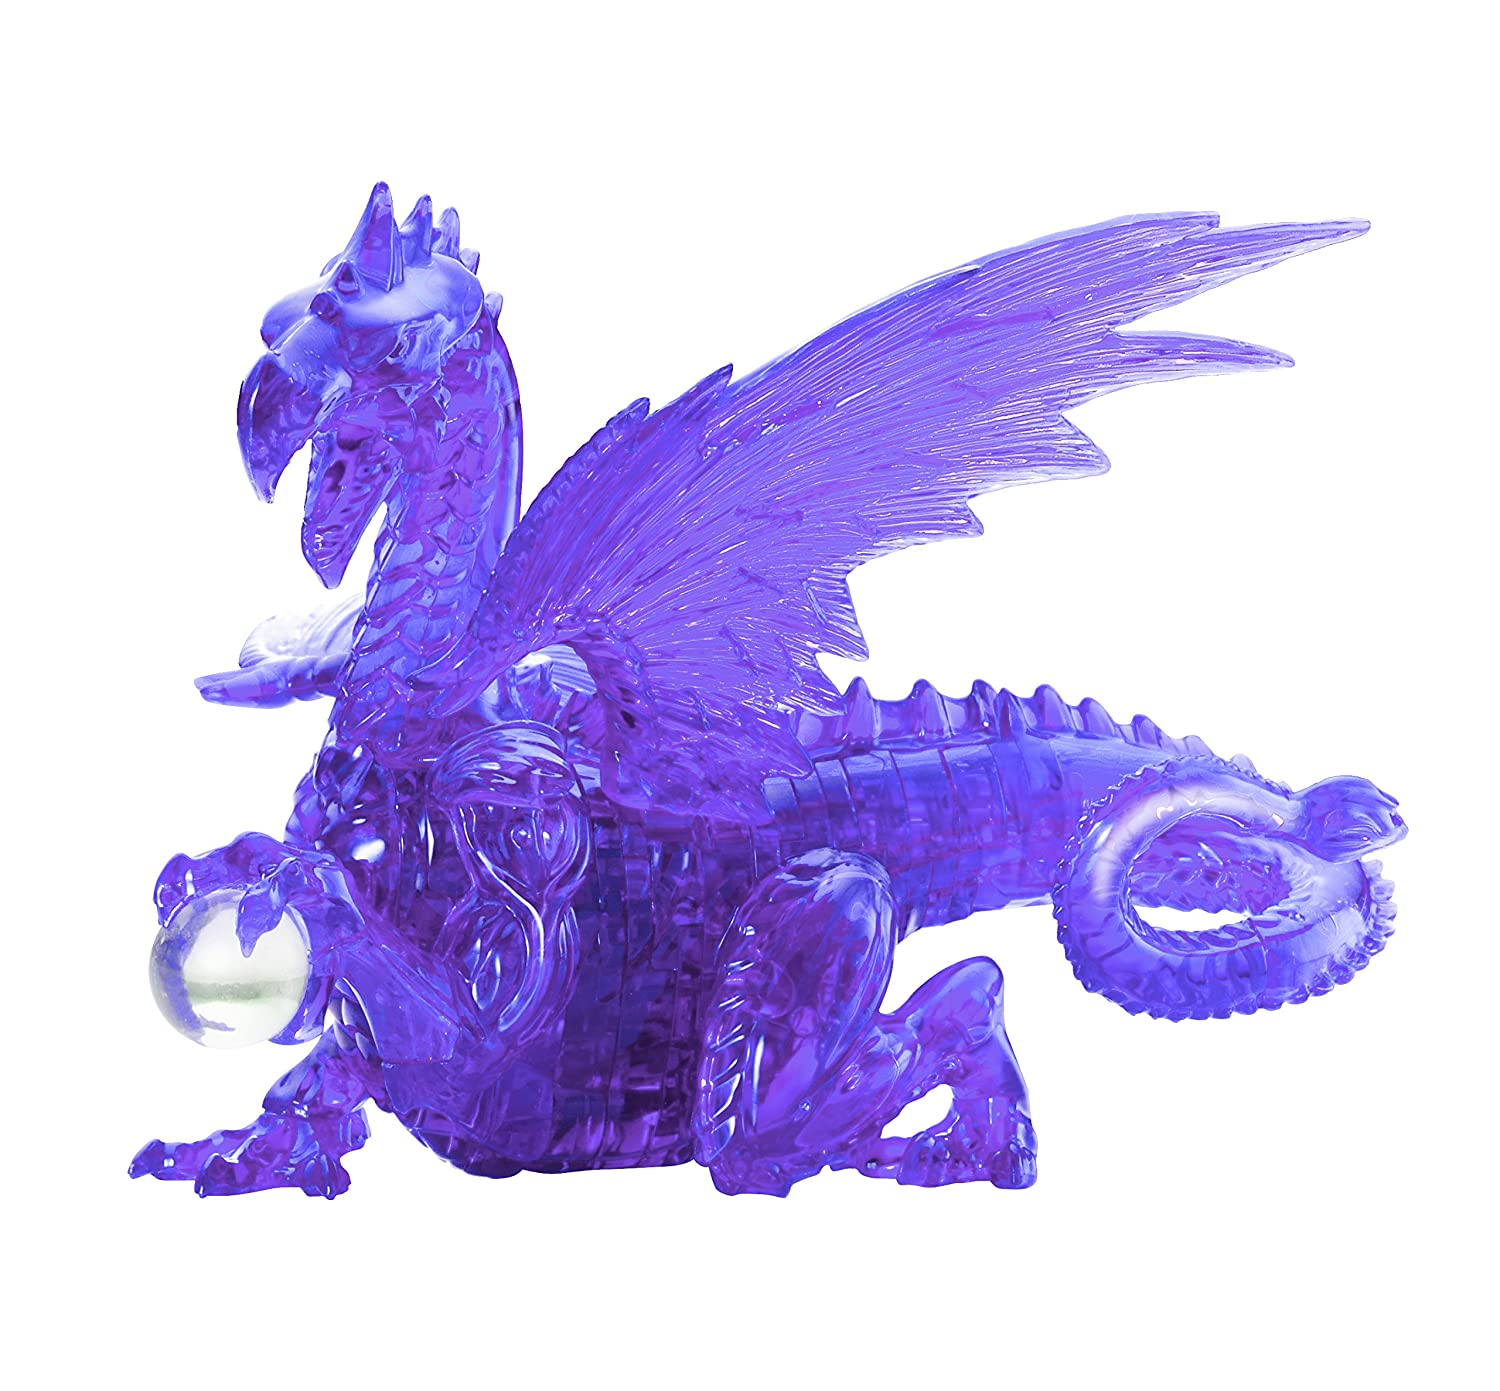 Bepuzzled Original 3D Deluxe Crystal Dragon Puzzle (56 Piece), Red University Games 31052